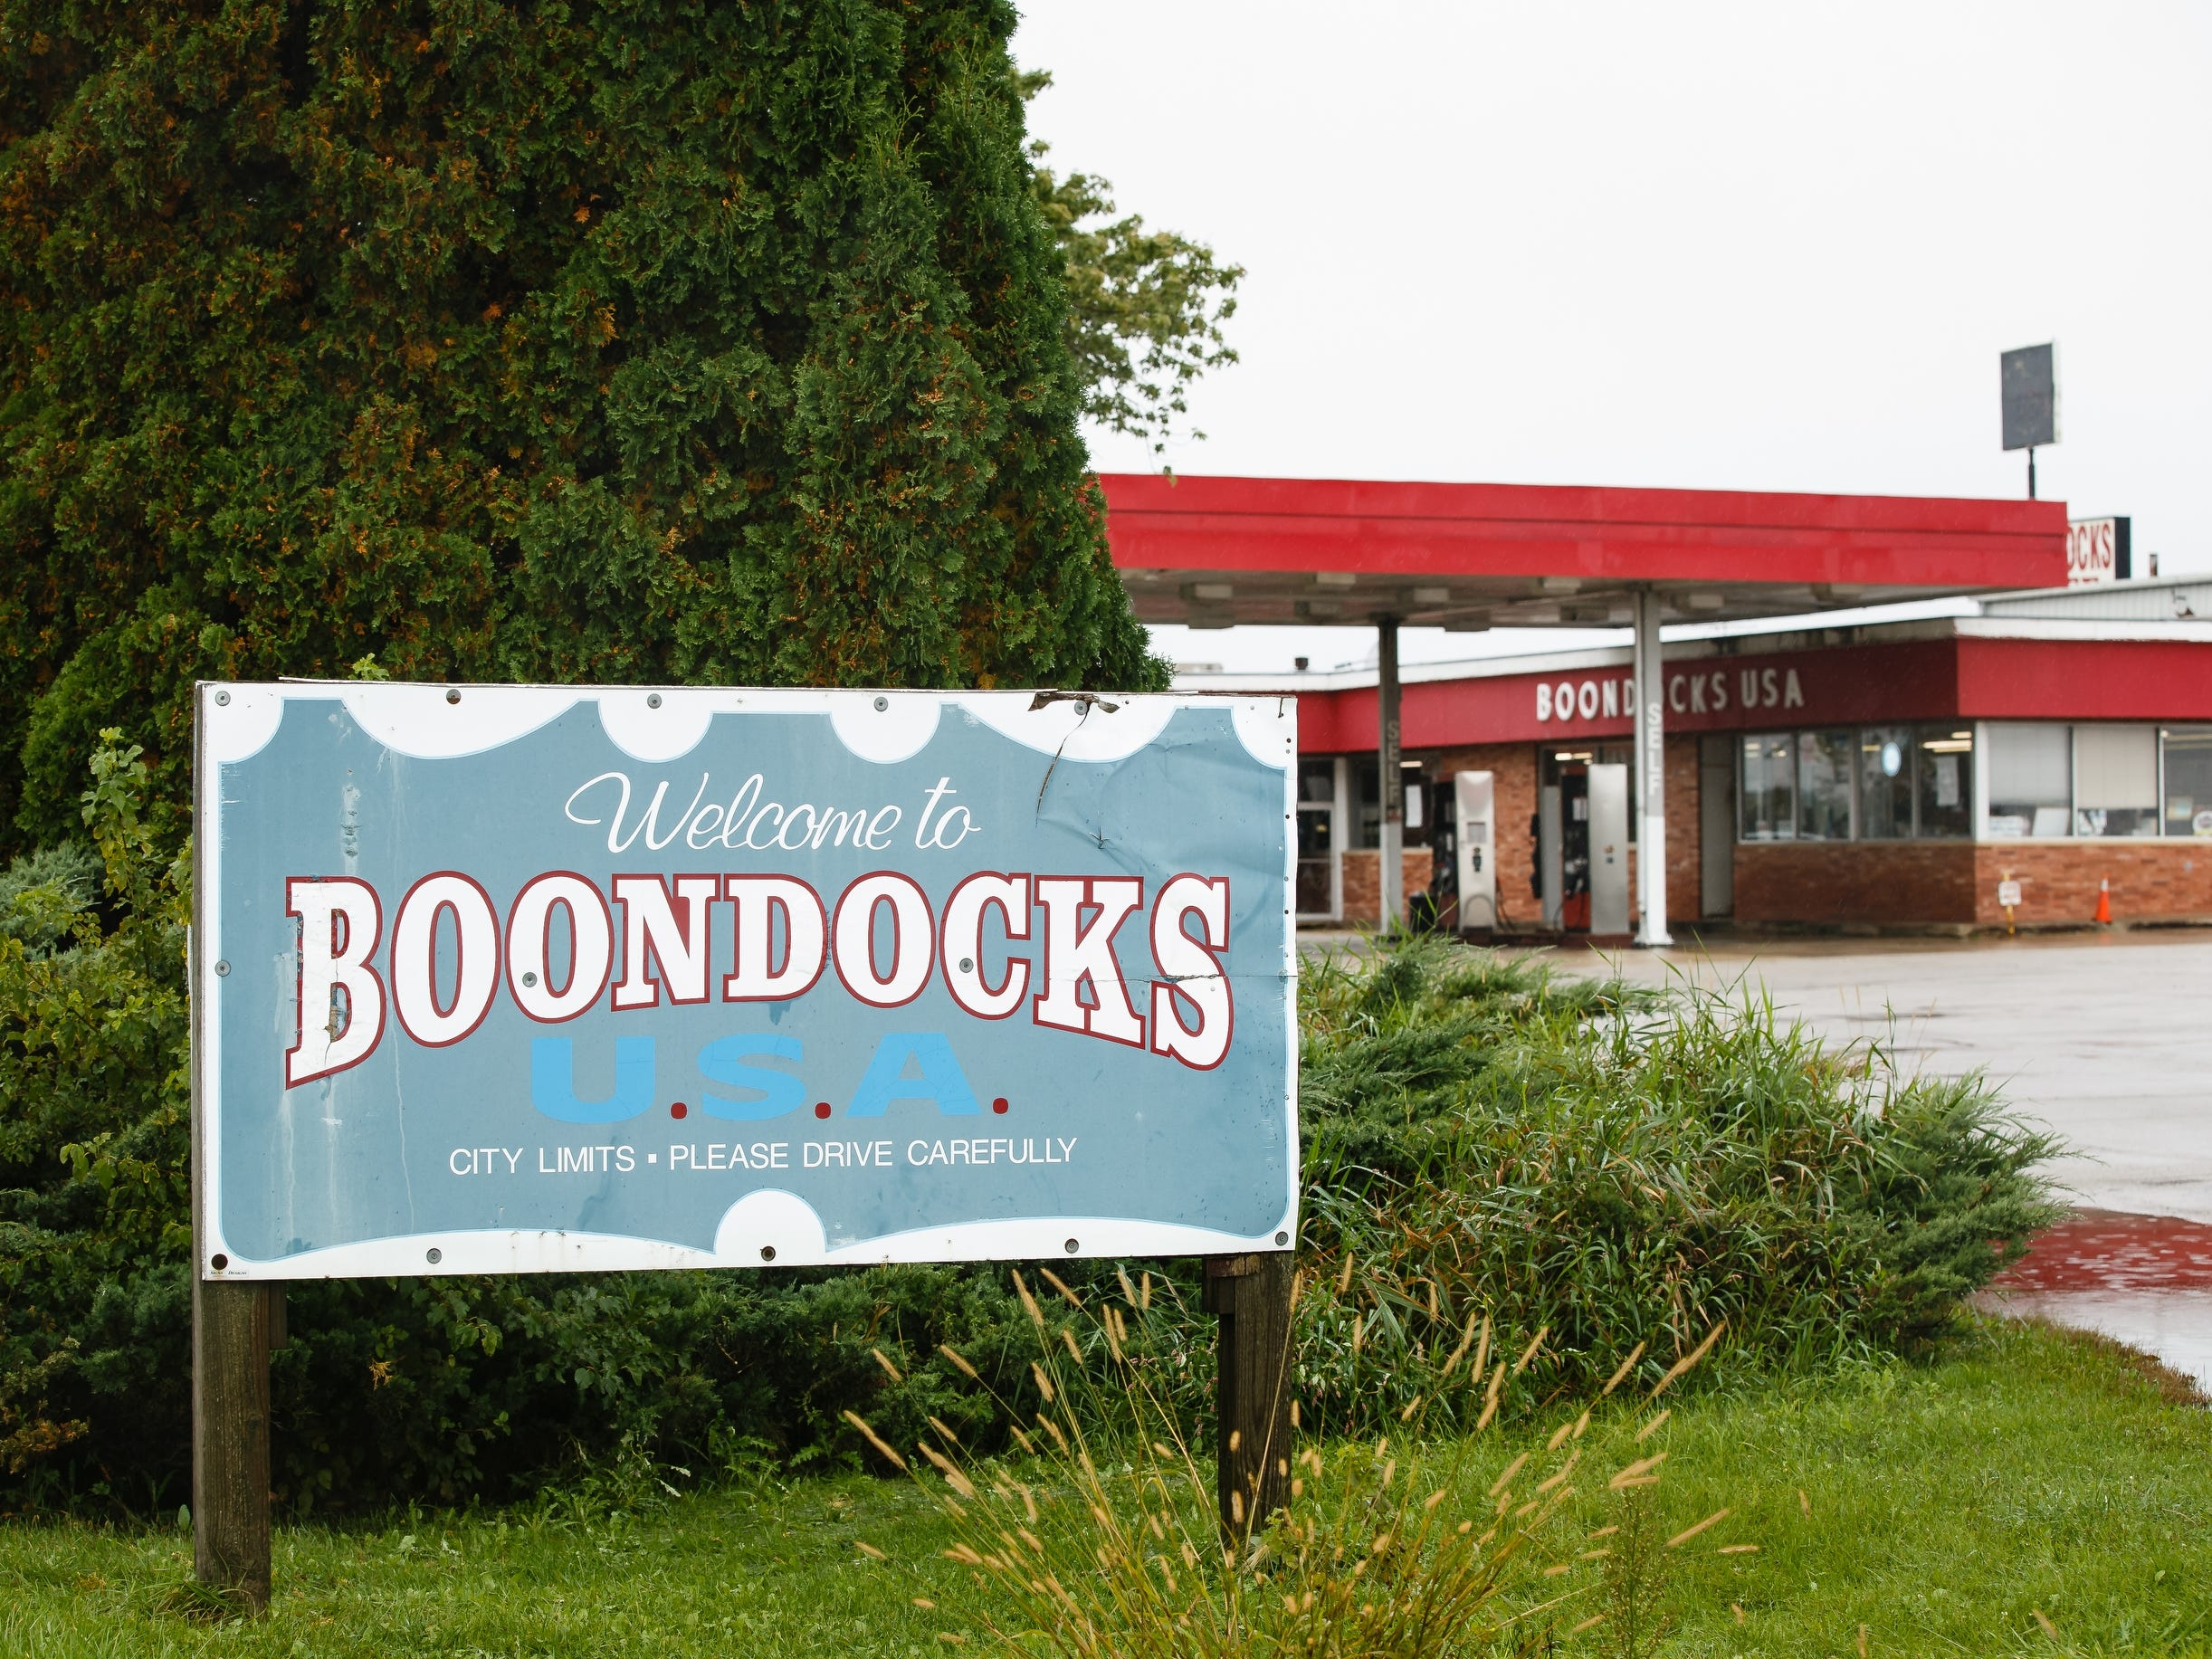 Bob and Miriam Welch have owned and operated the Boondocks truck stop along I-35 since 1973. They recently announced they will be closing the iconic store on Oct. 20. Here it is seen on Tuesday, Oct. 9, 2018 in Williams.